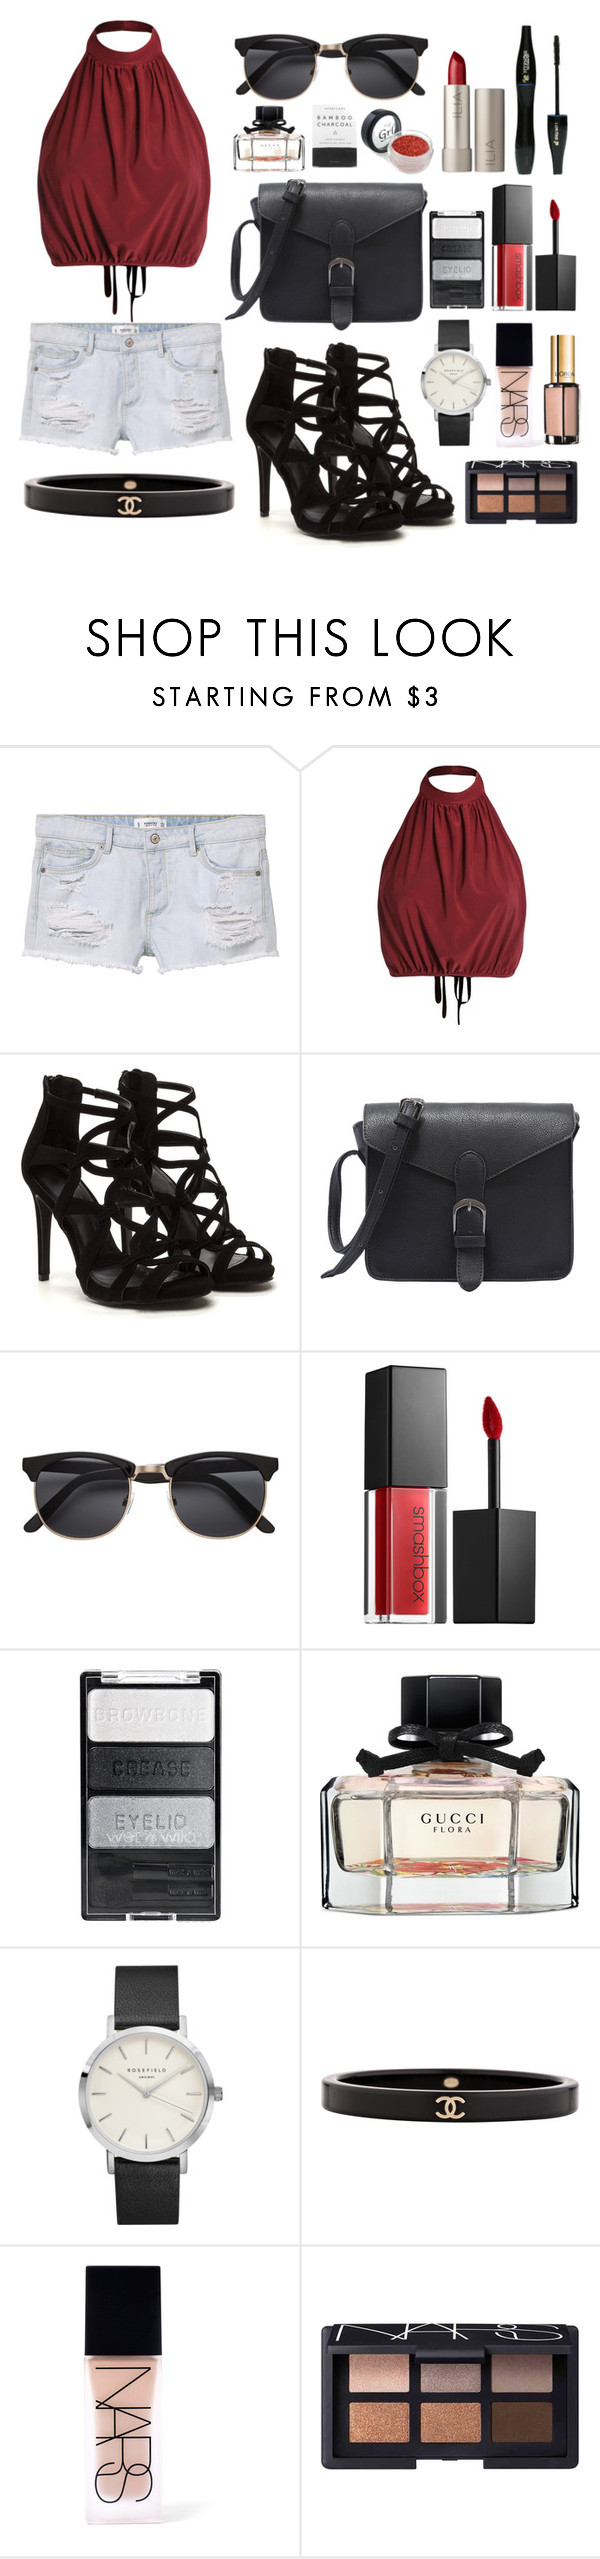 """""""Casual Morning Summer Night"""" by sugarbelle22 ❤ liked on Polyvore featuring MANGO, Lancôme, Ilia, Smashbox, Gucci, Chanel, NARS Cosmetics, L'Oréal Paris and Herbivore"""